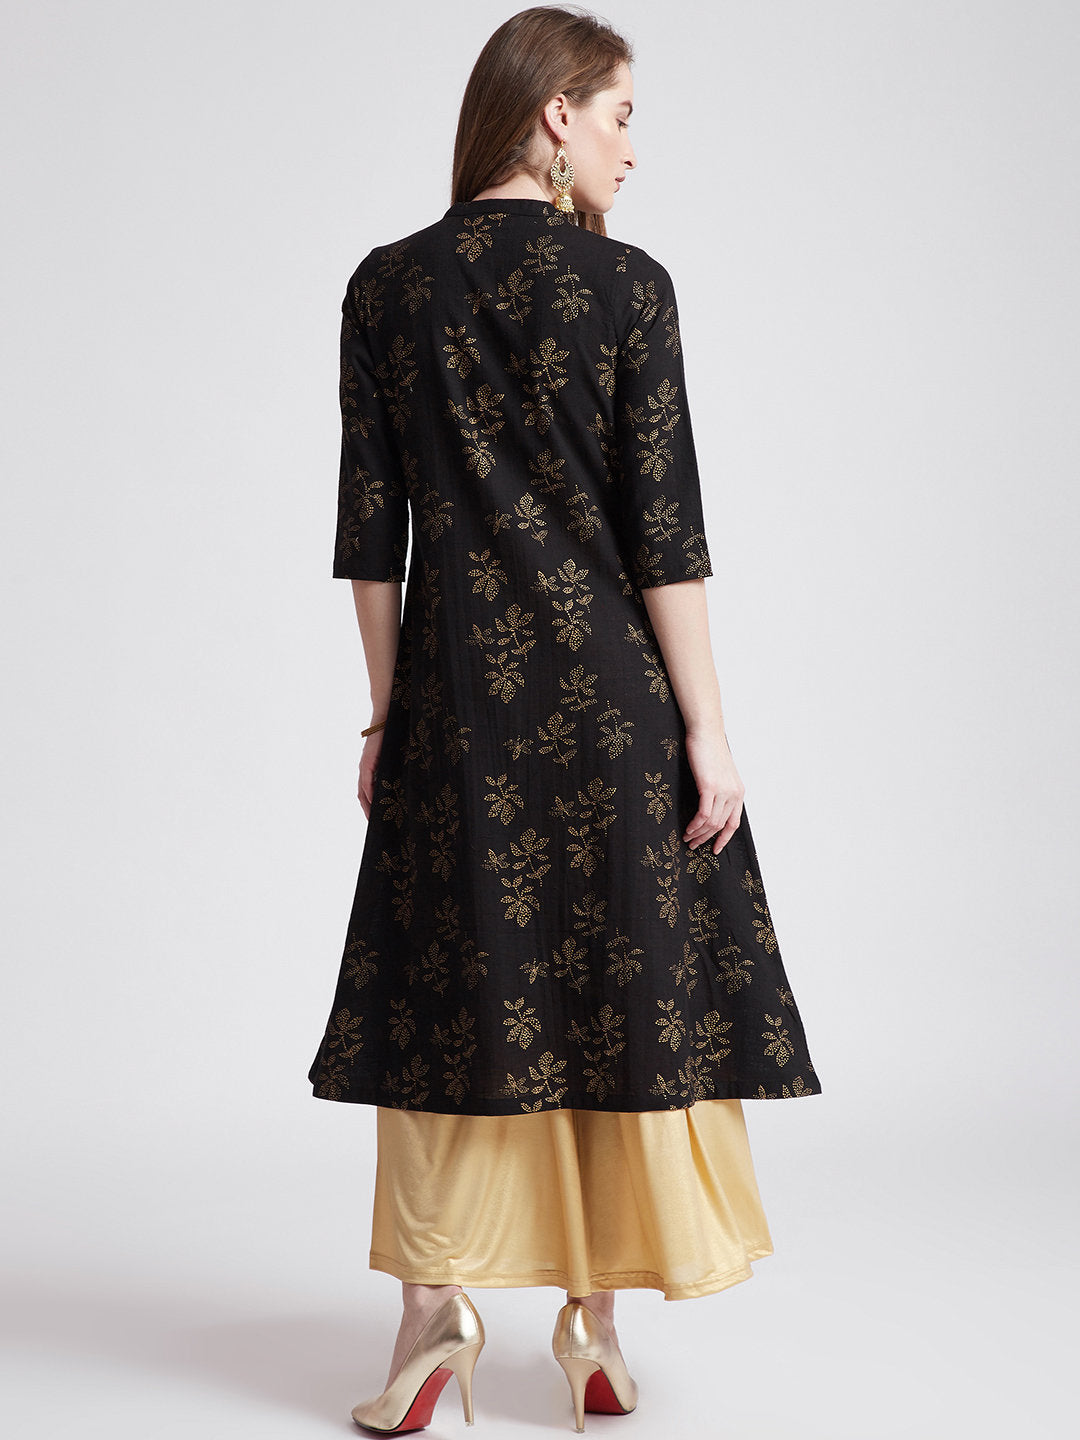 Indian ethnic gold hand block printed long kurta with front slit in black colour with pockets and button detailing on front